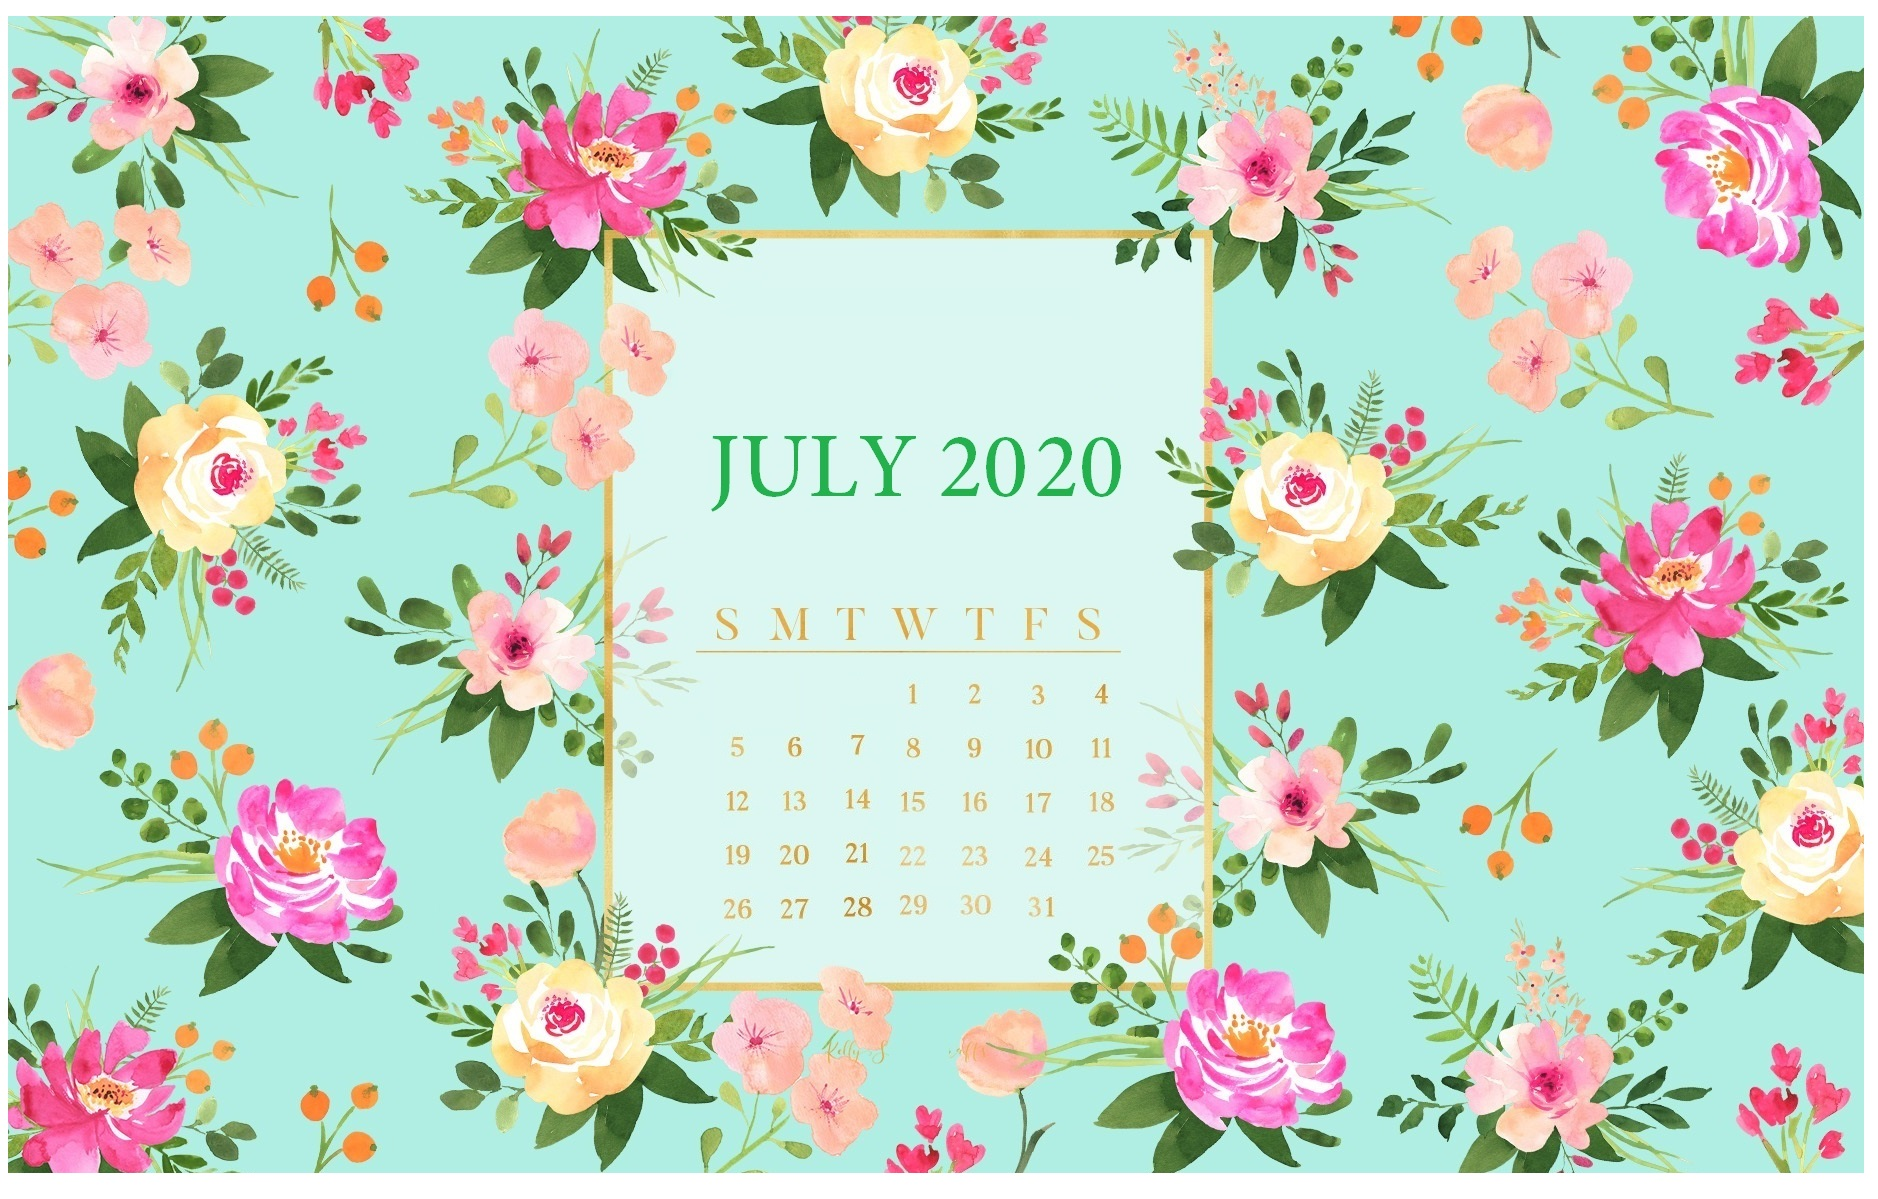 July 2020 Desktop Calendar Wallpaper Floral July 2020 Wall